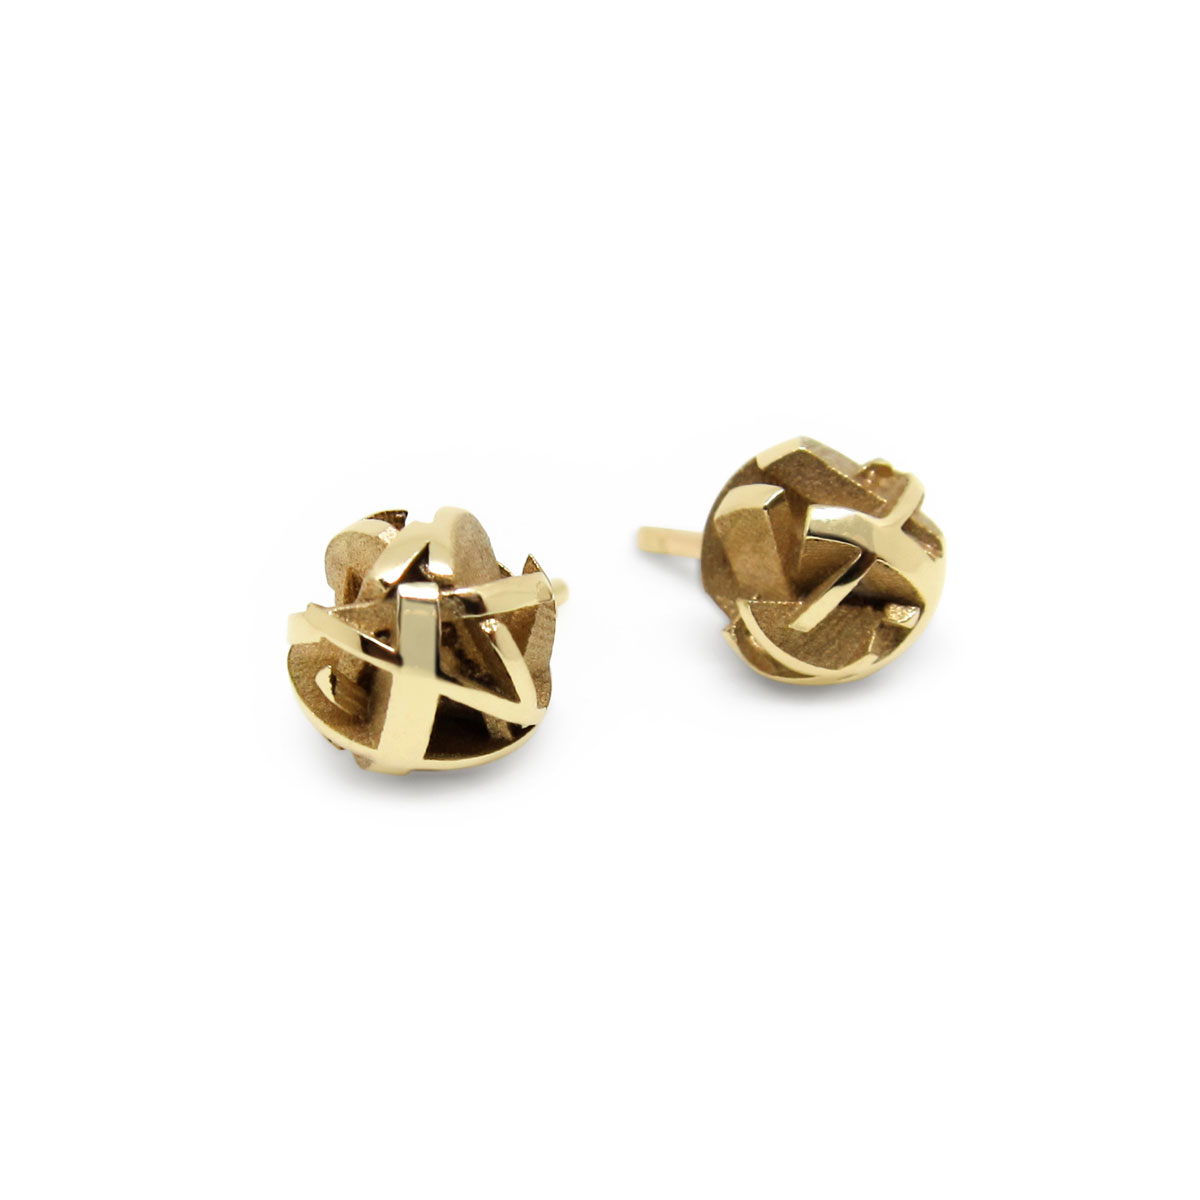 3D printed yellow gold stud earrings